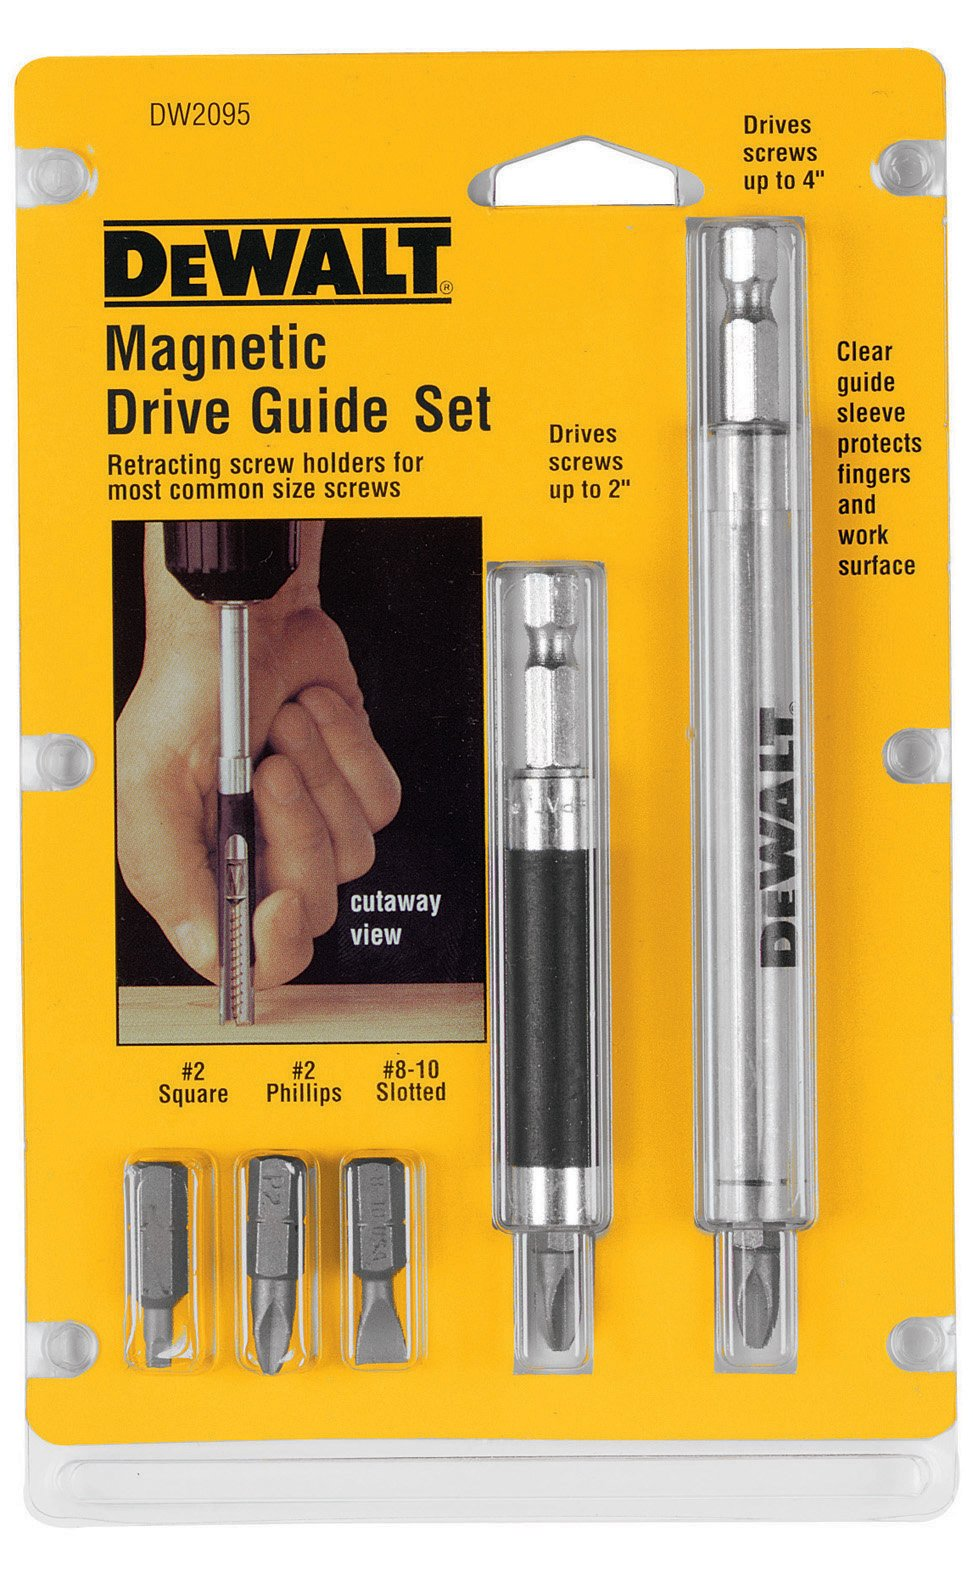 DEWALT Bit Set with Magnetic Drive Guide (DW2095)